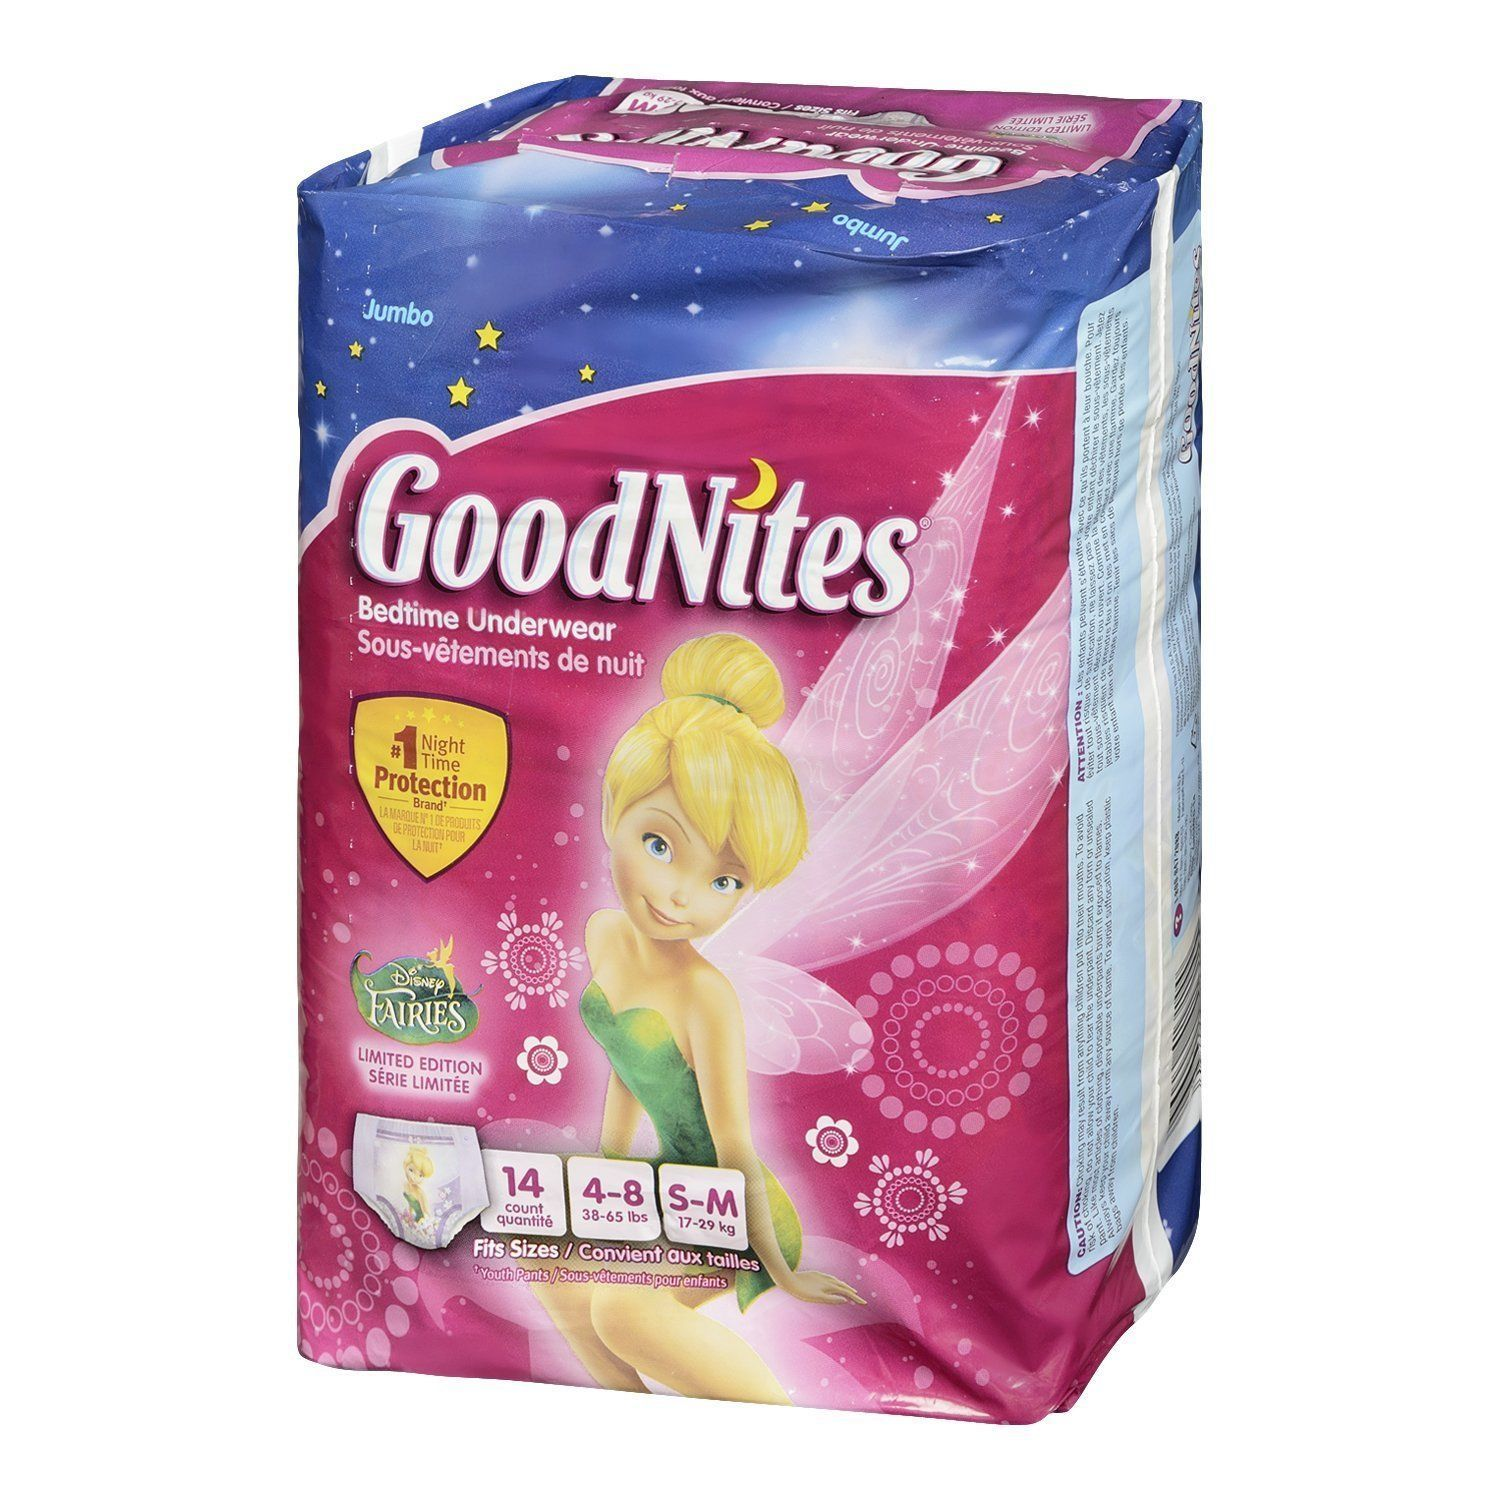 Potty Training Disposable Underwear Protection Night Time S/M 14 CT Girls